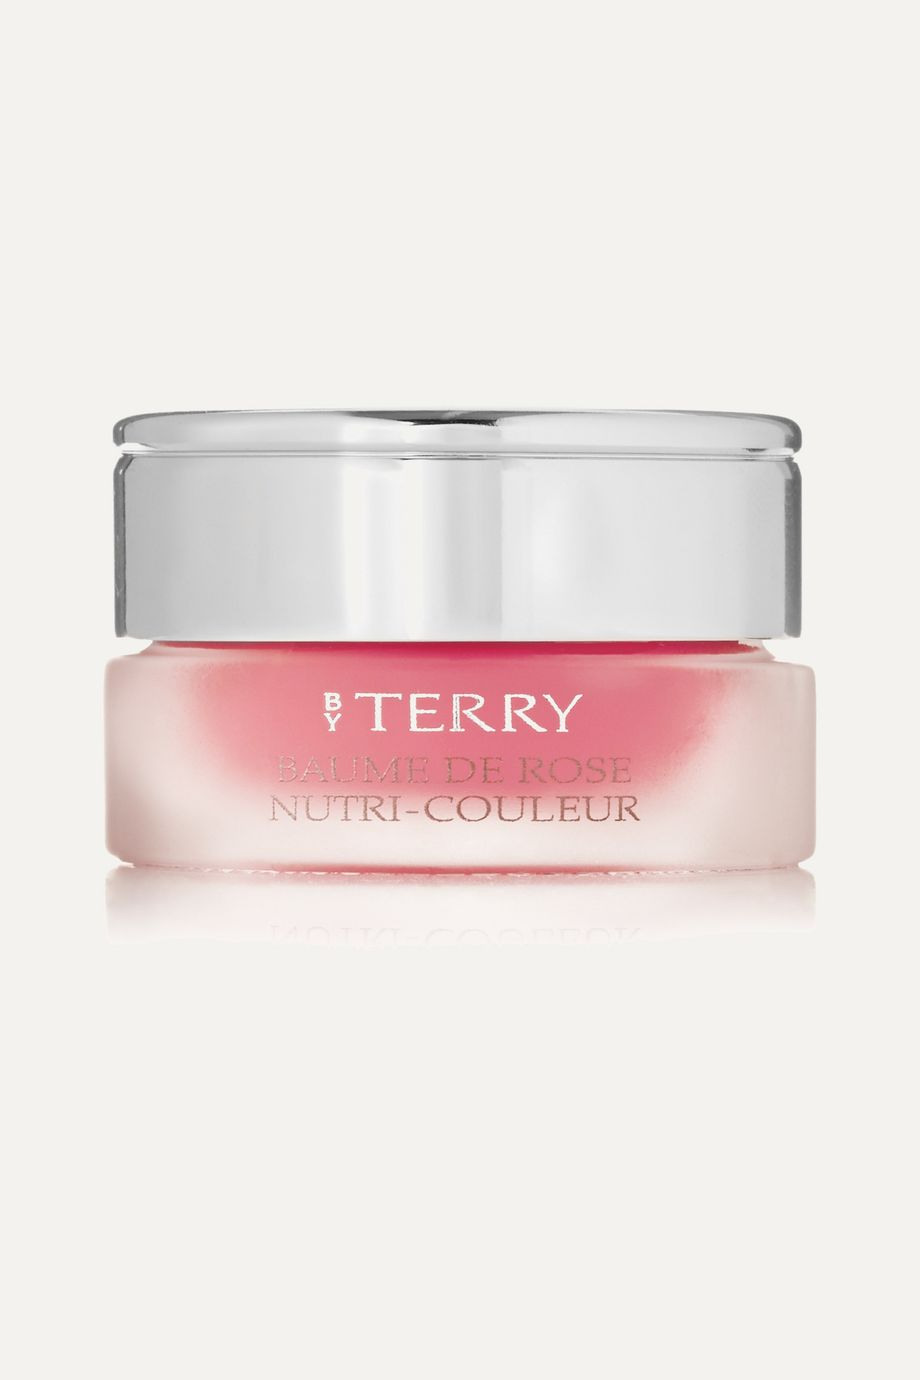 BY TERRY Baume De Rose Nutri-Couleur - Rosy Babe